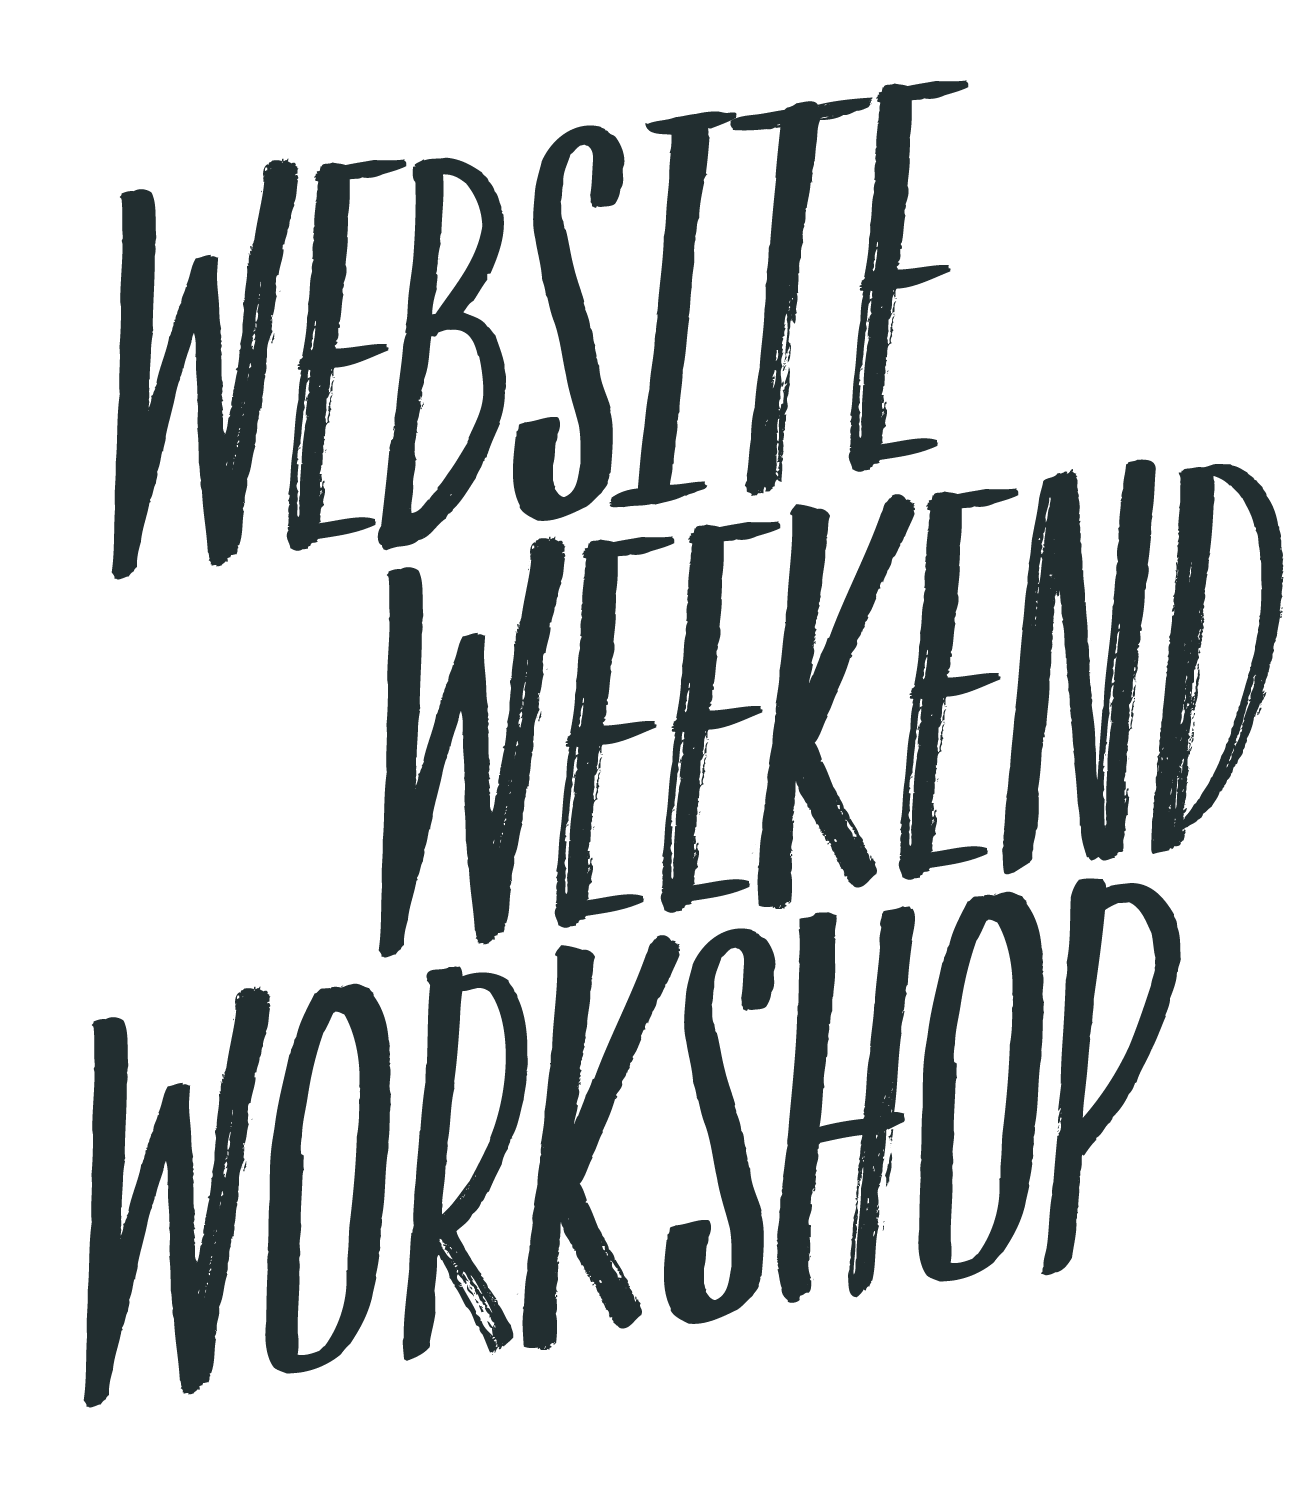 Weekend website workshop